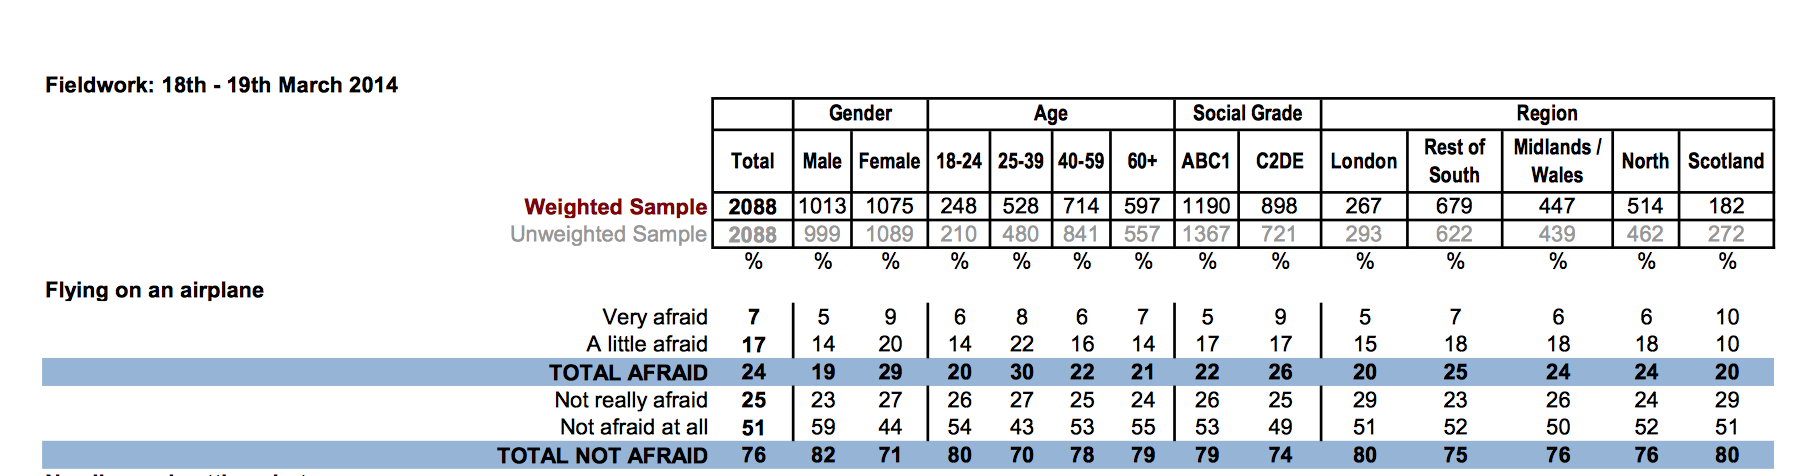 YOUGOV_FOF_UK_RESULTS_2014